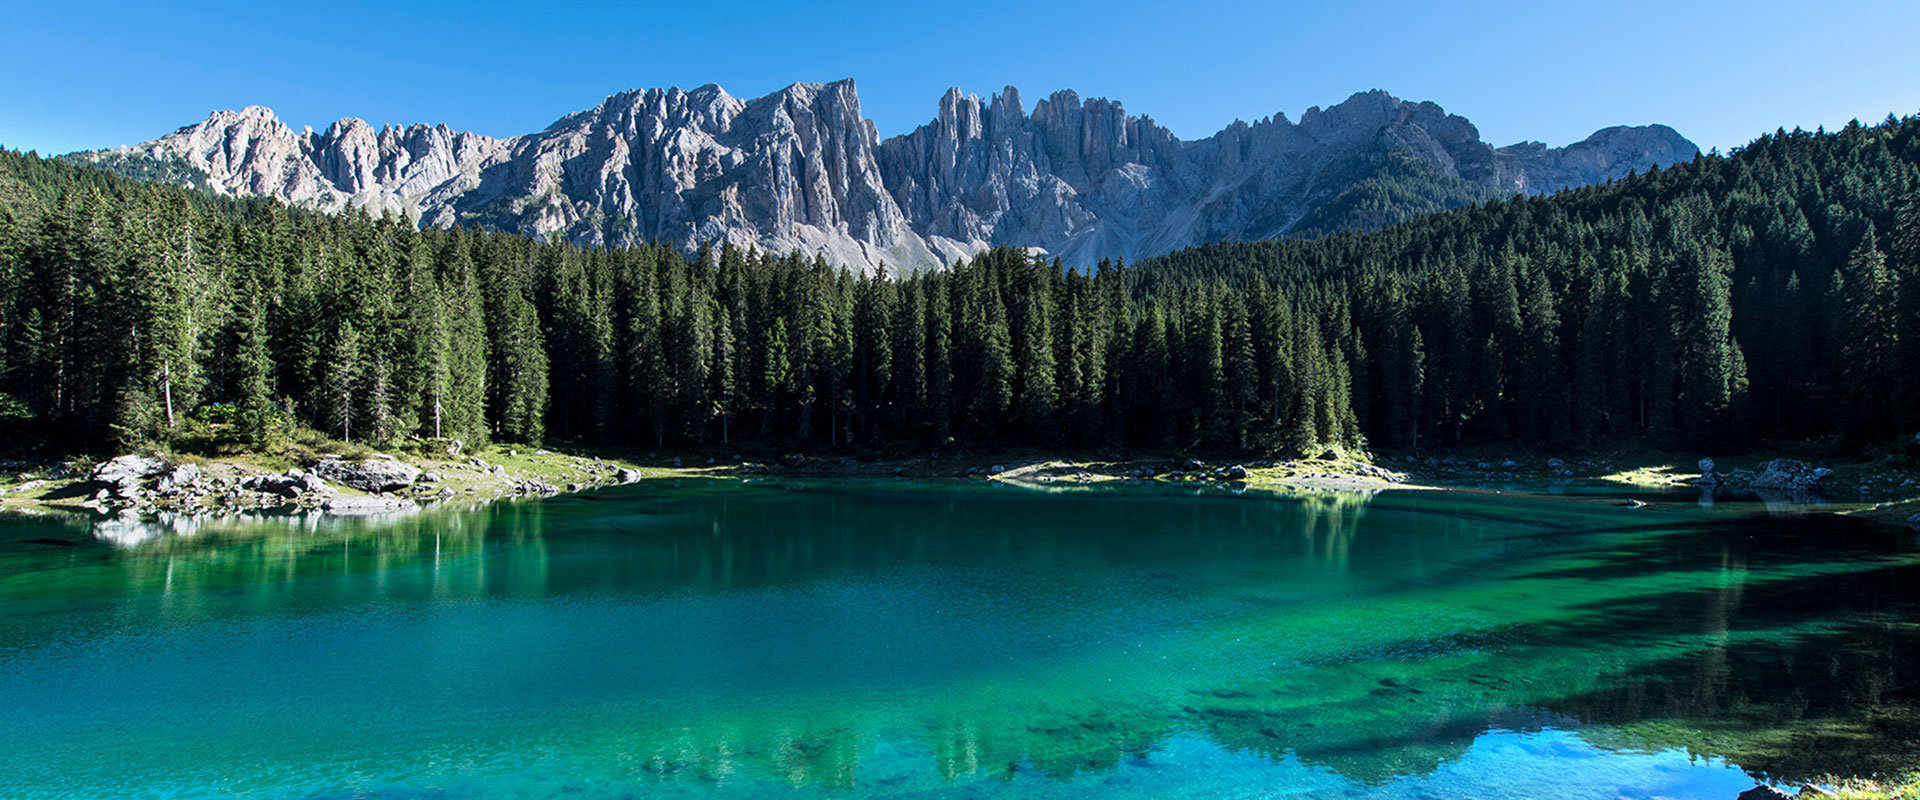 Lake Carezza beautiful in the Alps